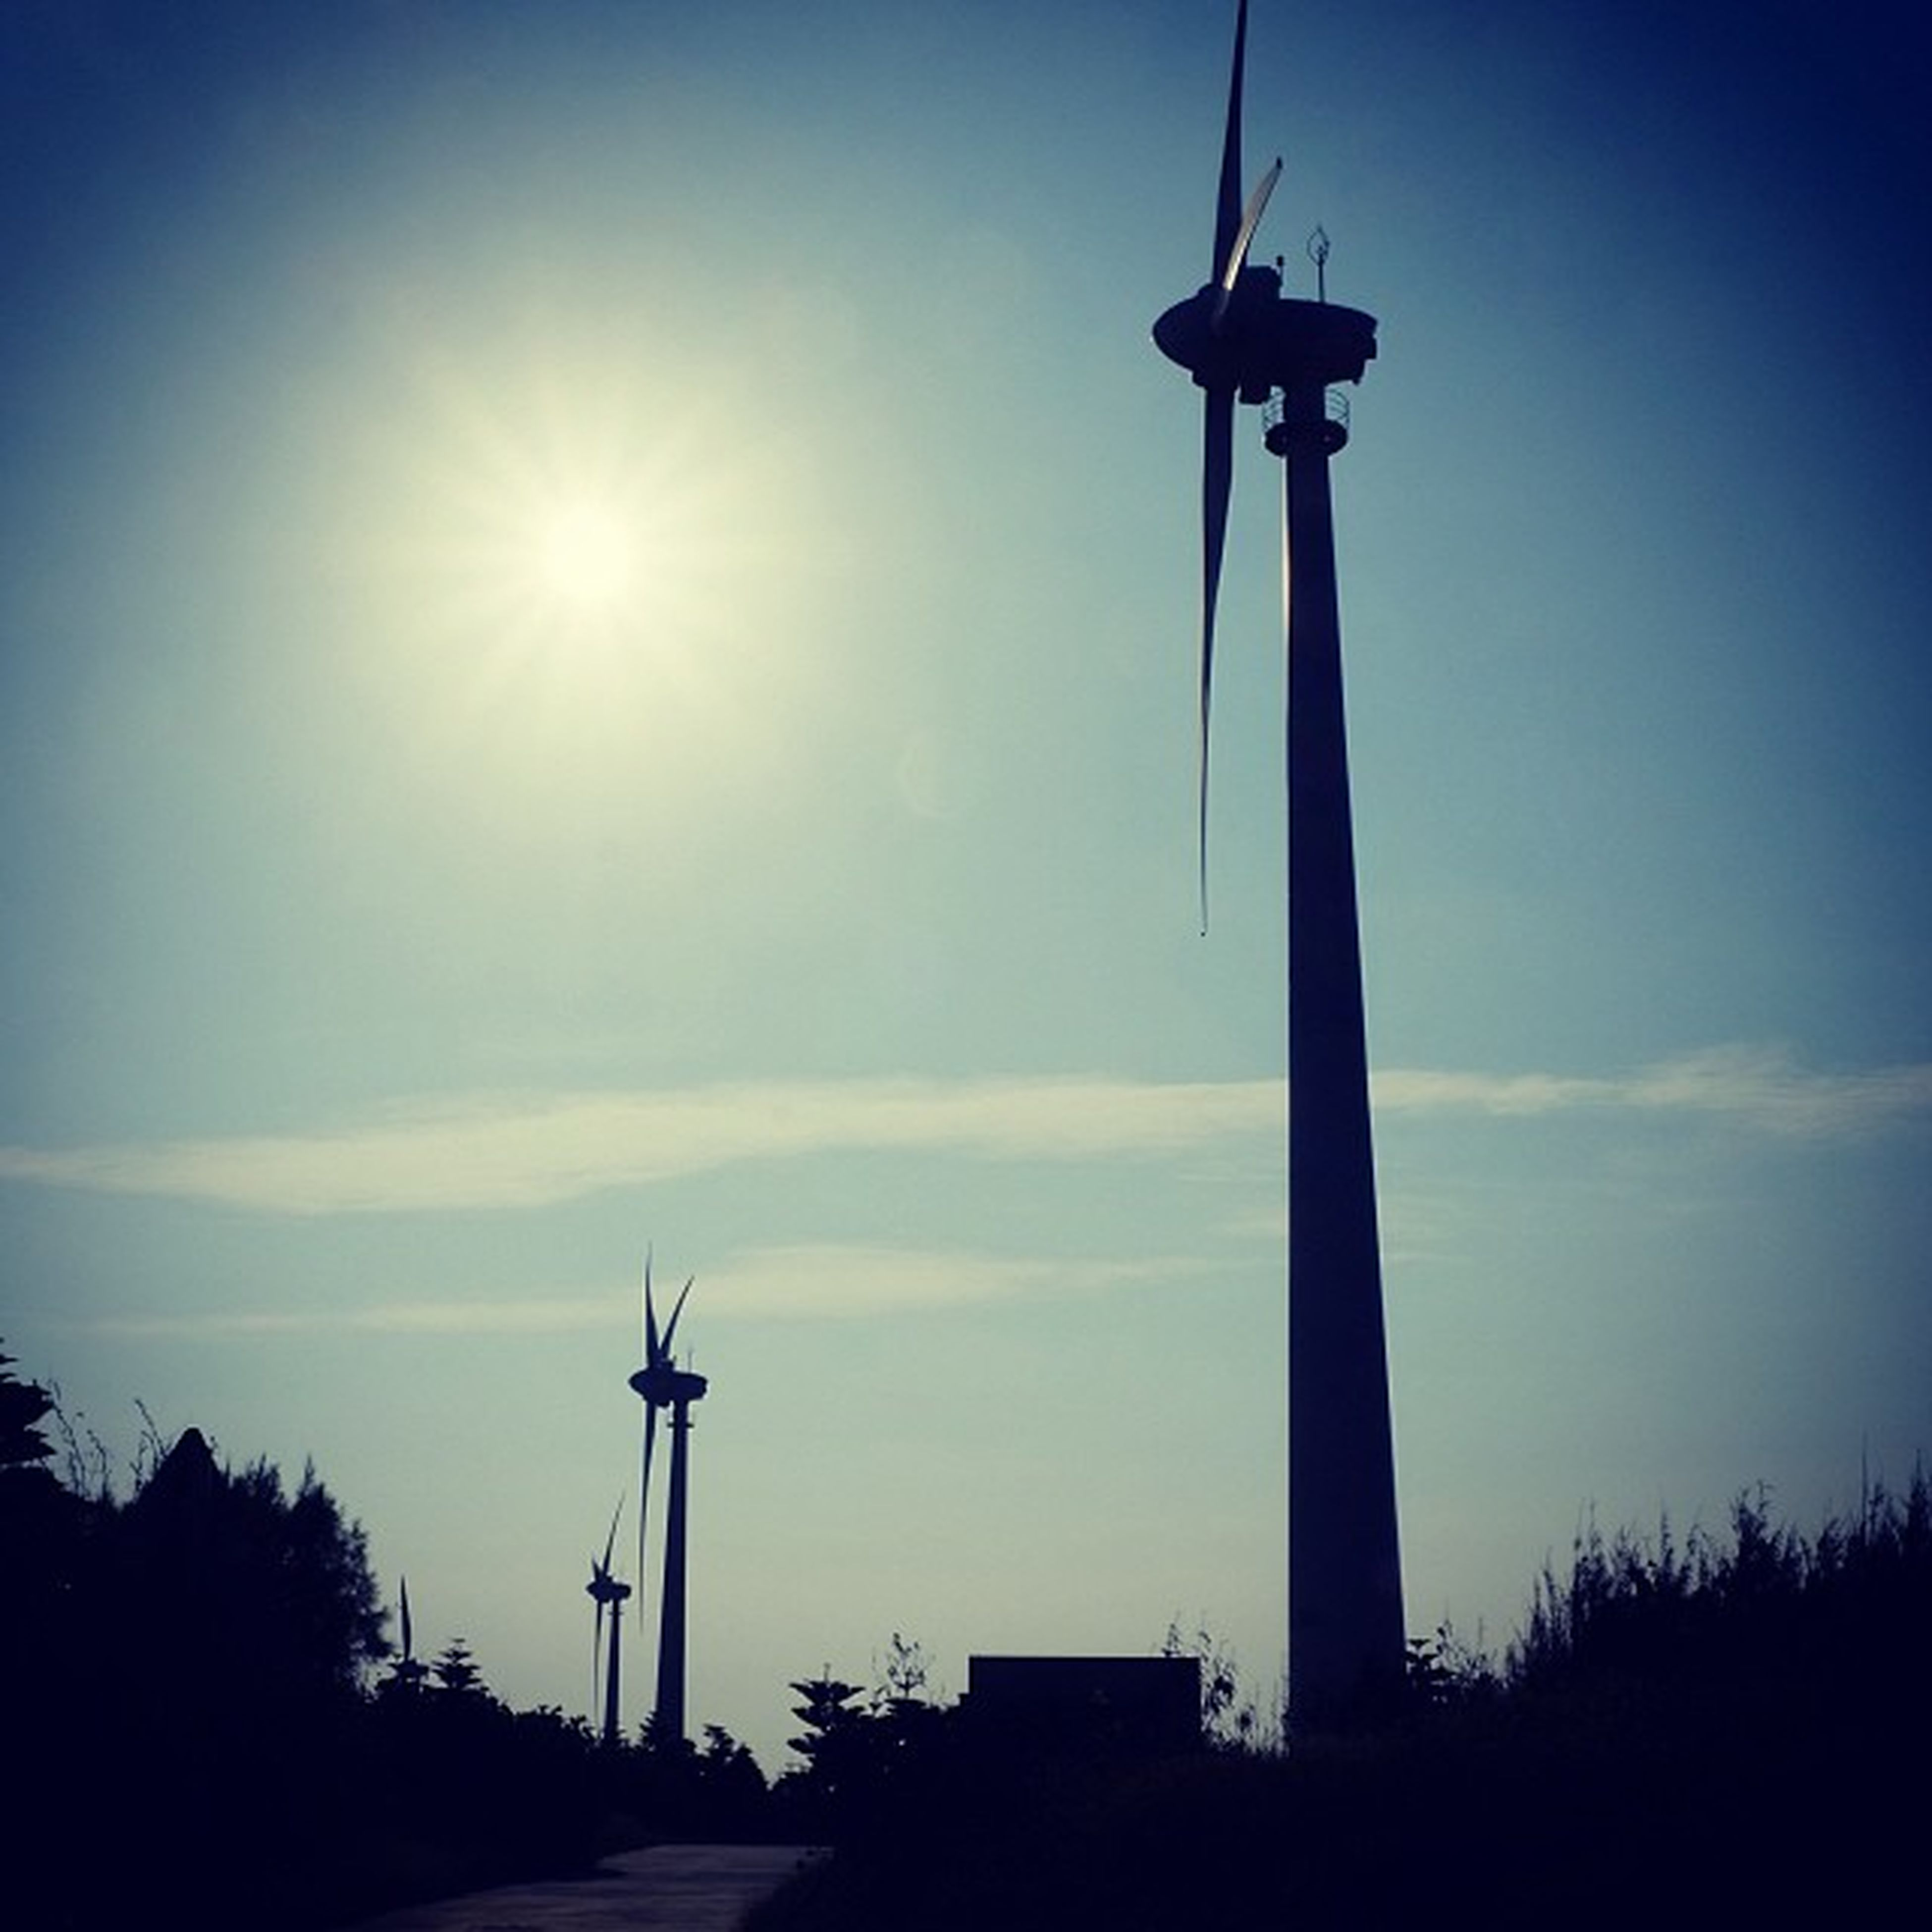 wind power, wind turbine, renewable energy, alternative energy, environmental conservation, windmill, fuel and power generation, sun, low angle view, silhouette, sky, technology, sunlight, traditional windmill, sunbeam, lens flare, rural scene, nature, field, sunset